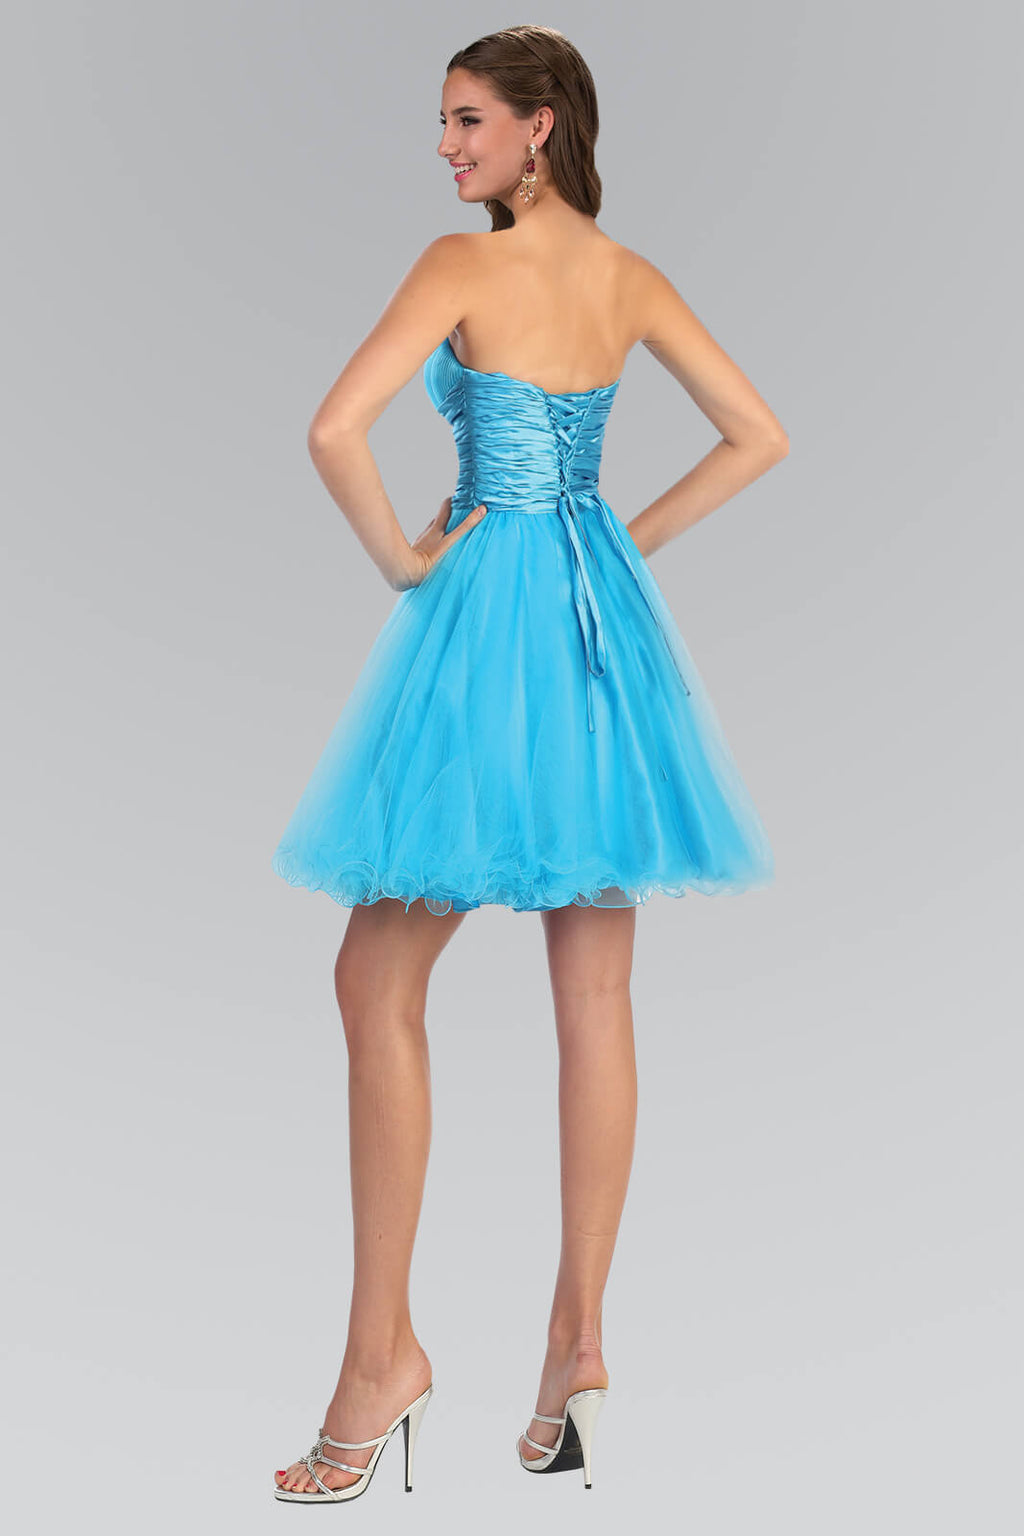 Strapless Short Prom Dress Formal Homecoming - The Dress Outlet